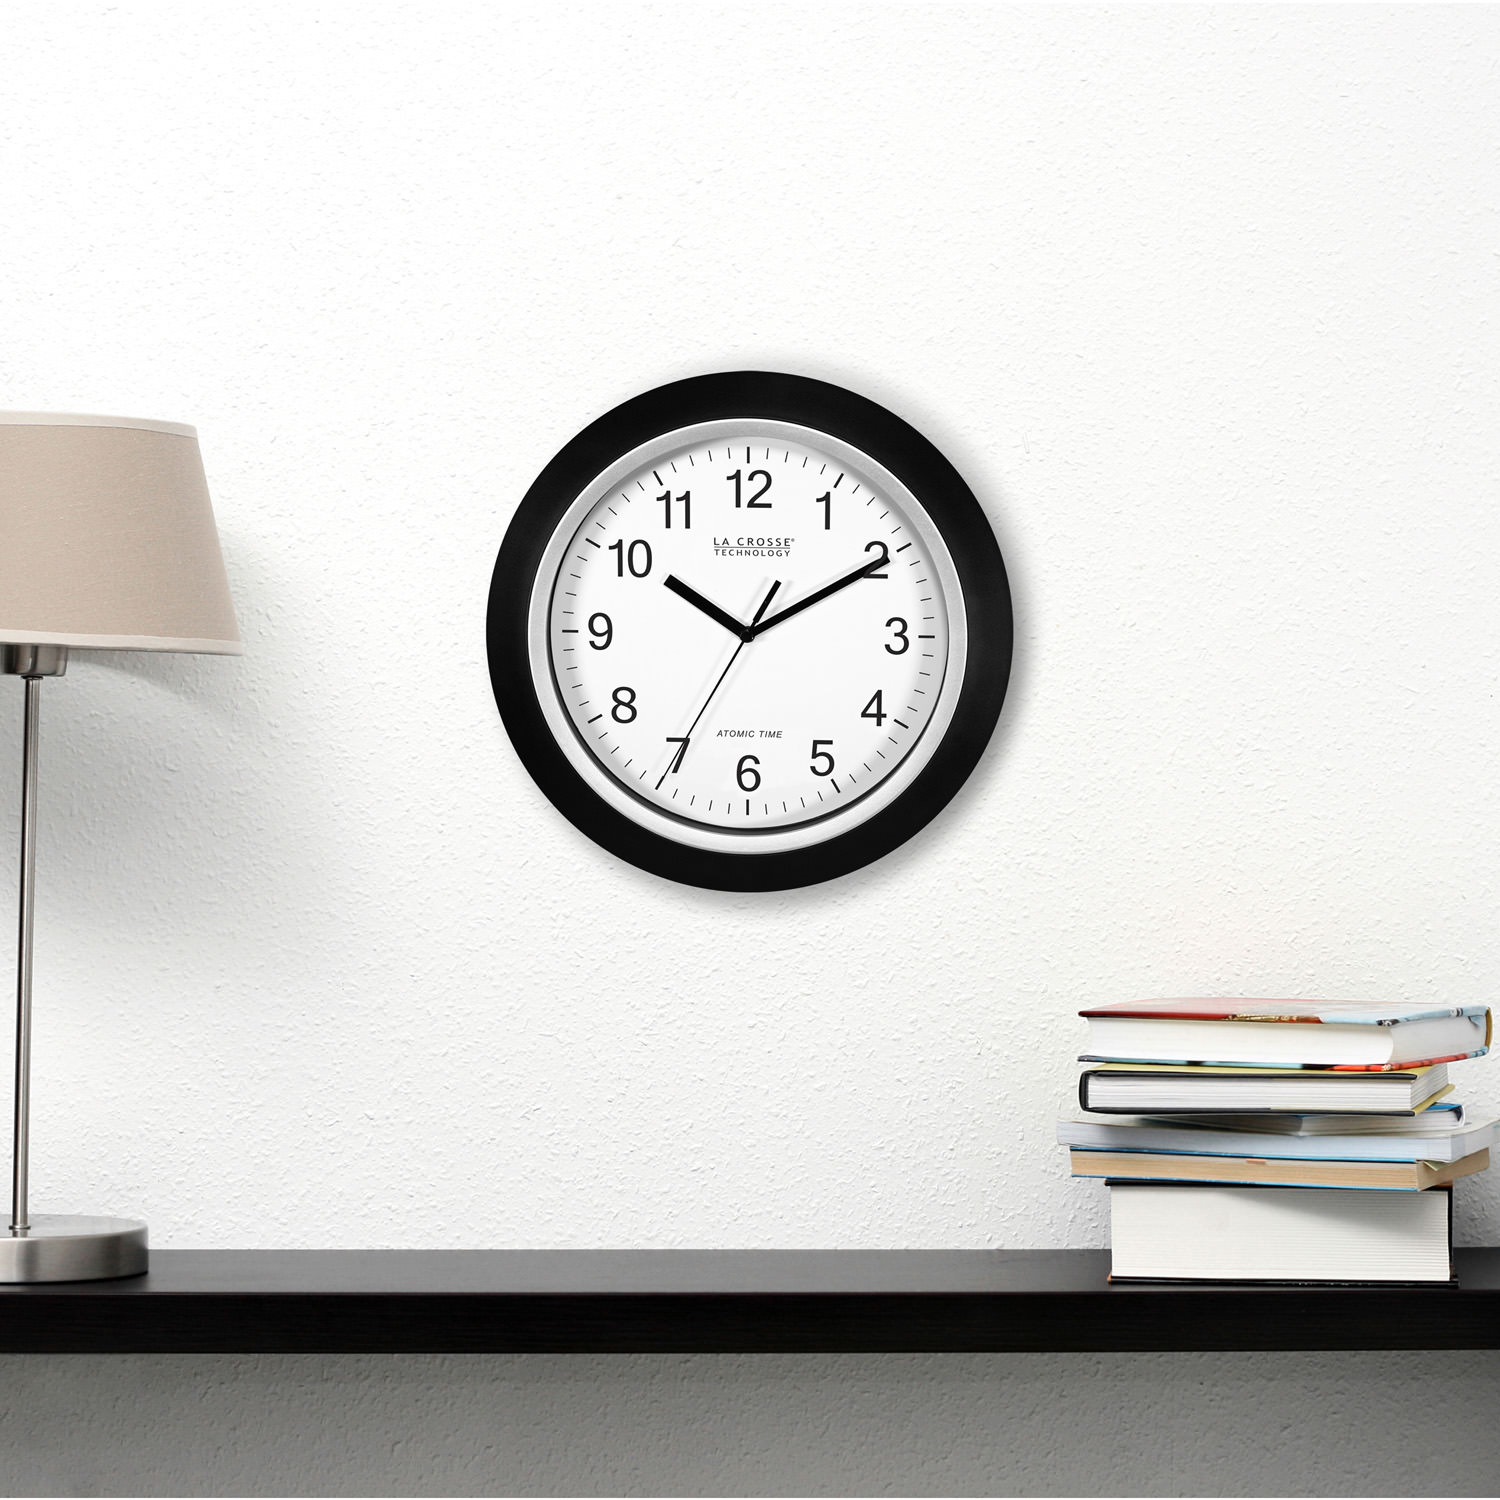 Better homes and gardens 12 inch analog atomic wall clock better homes and gardens 12 inch analog atomic wall clock walmart amipublicfo Gallery